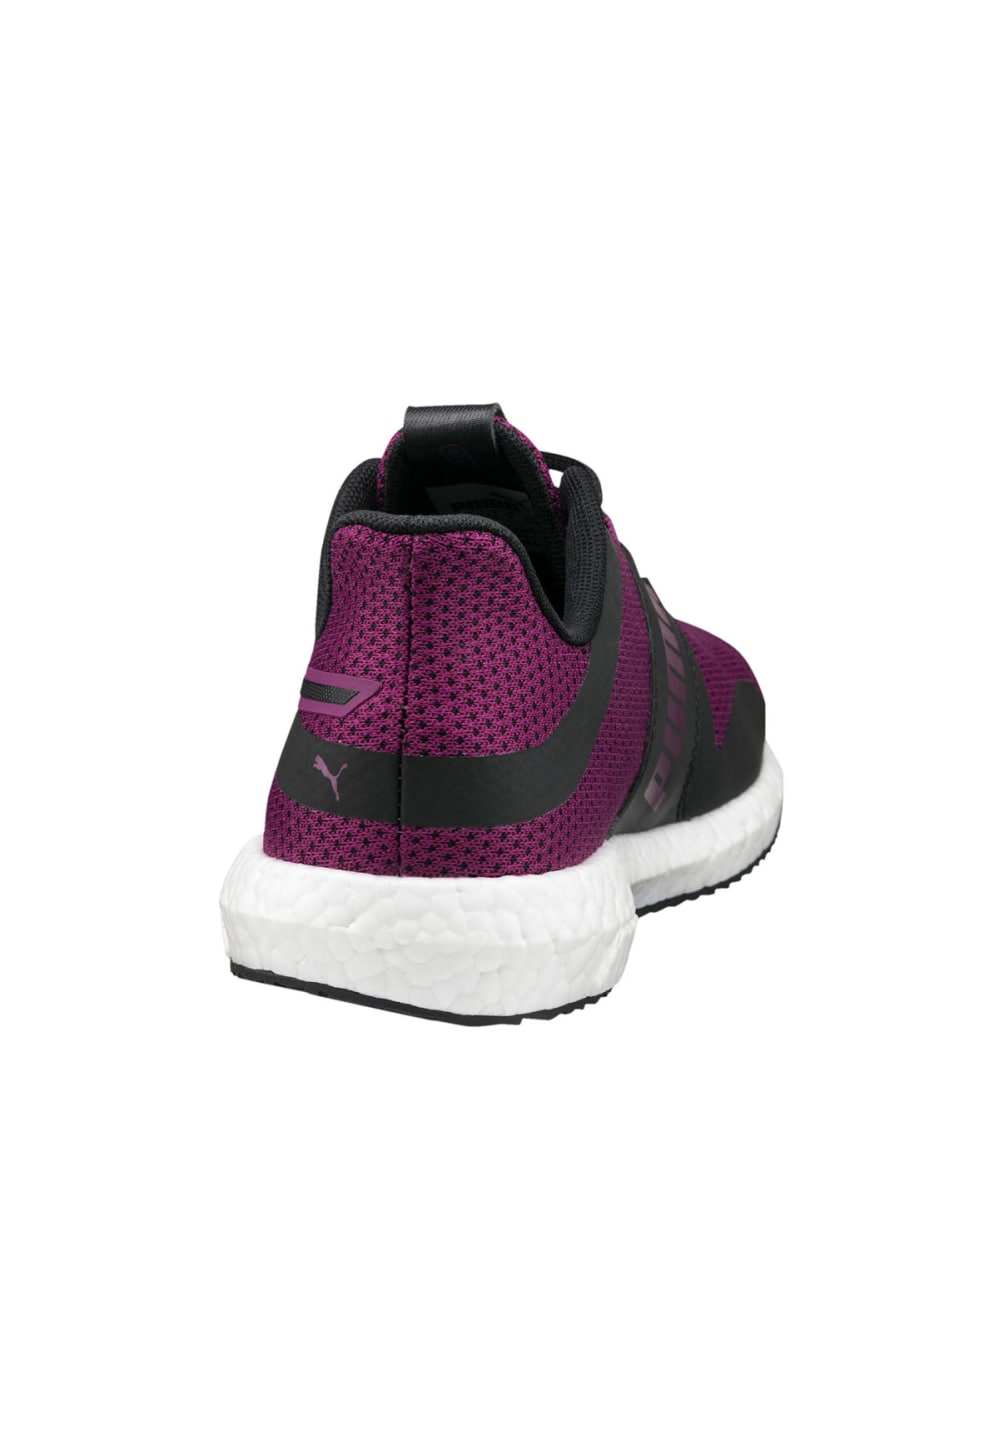 b567d3a882eb40 ... Puma Mega NRGY Turbo - Fitness shoes for Women - Black. Back to  Overview. 1  2  3  4. Previous. Next